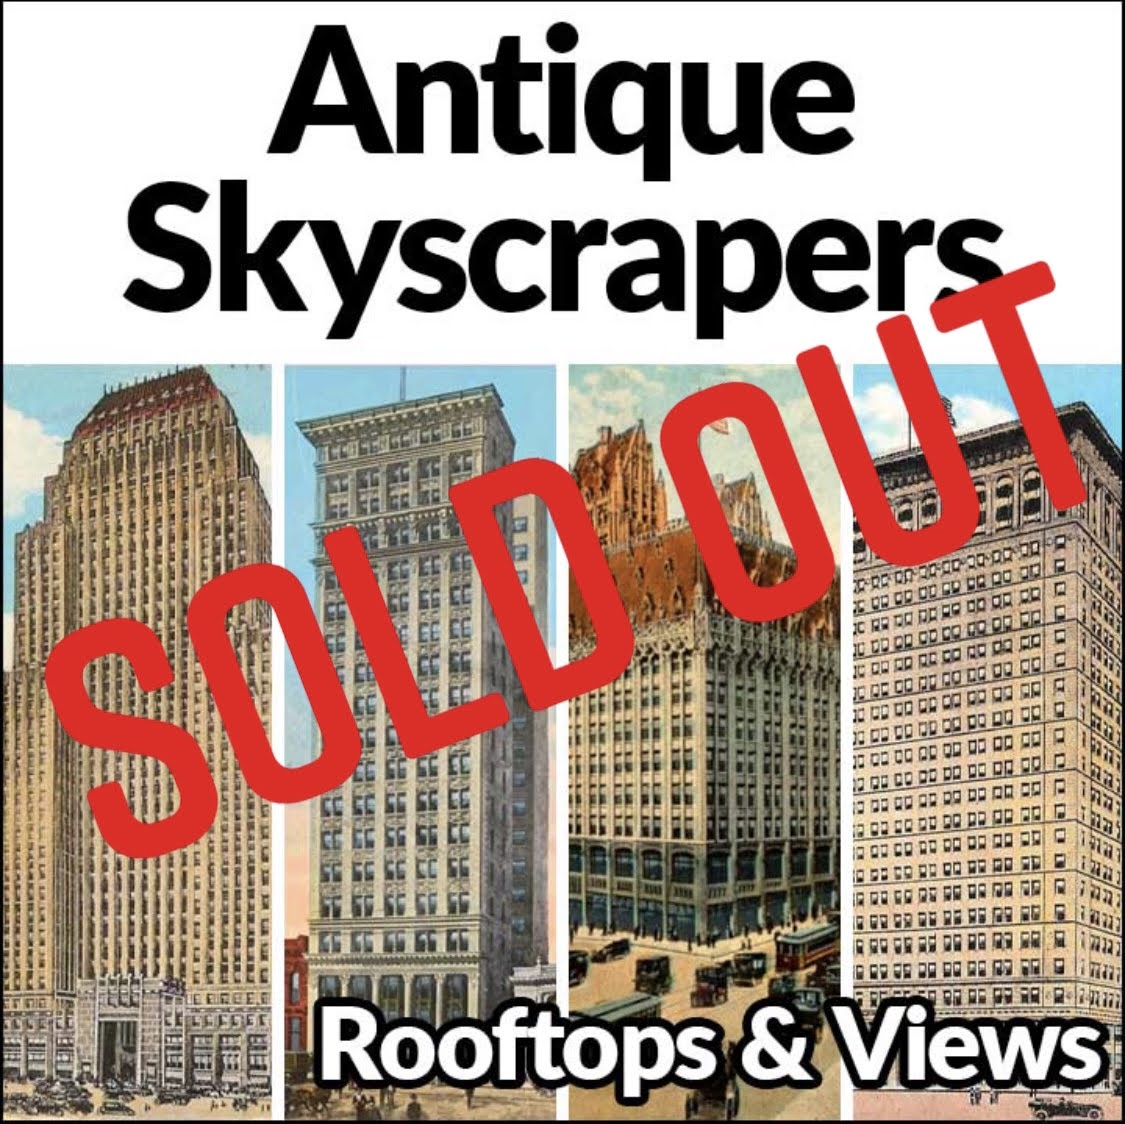 Antique Skyscrapers Guided Walking Tour